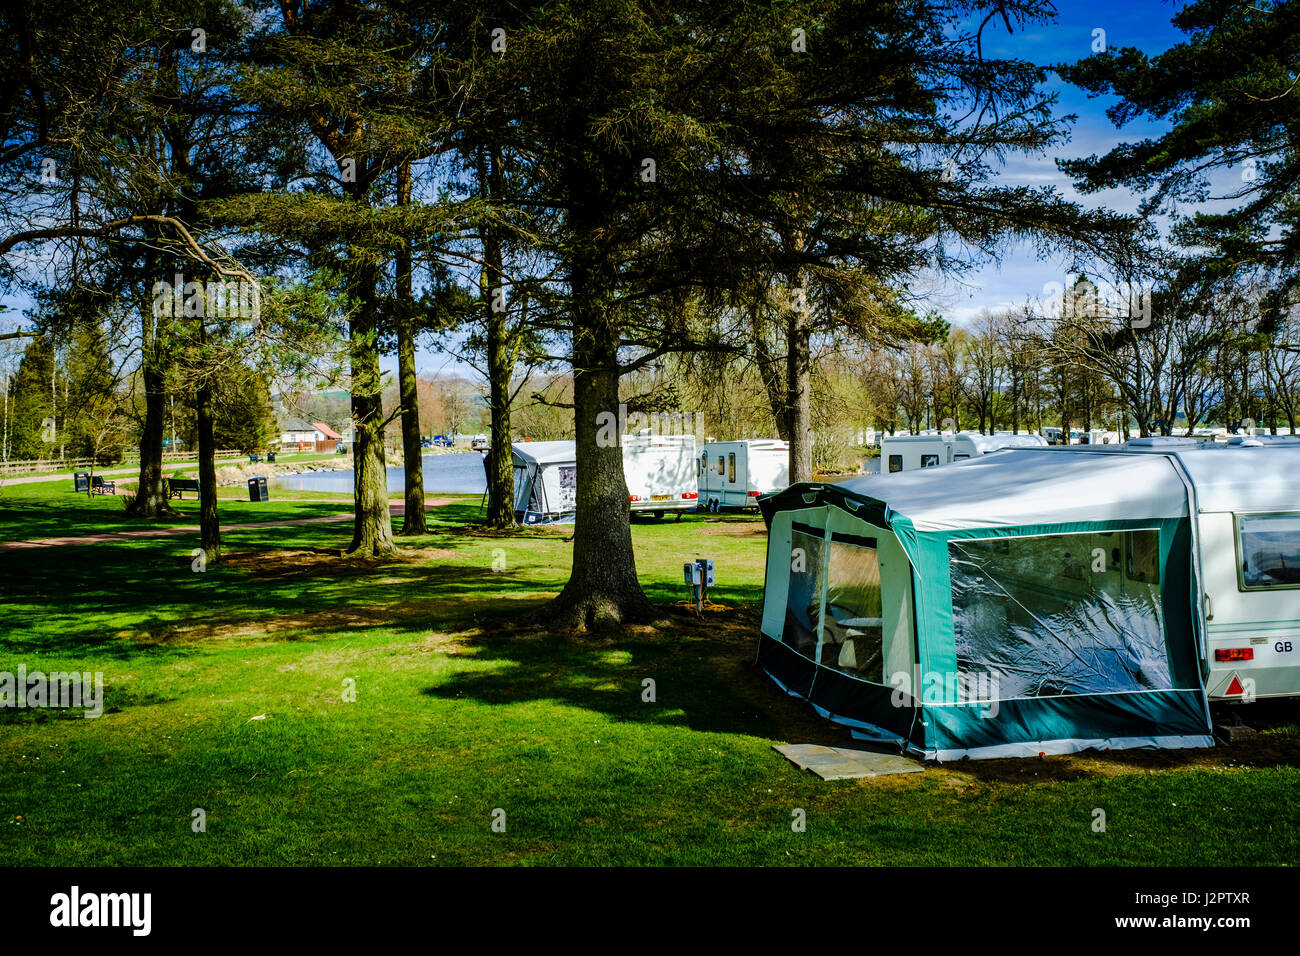 Biggar Caravan Park and Boating Pond - Stock Image